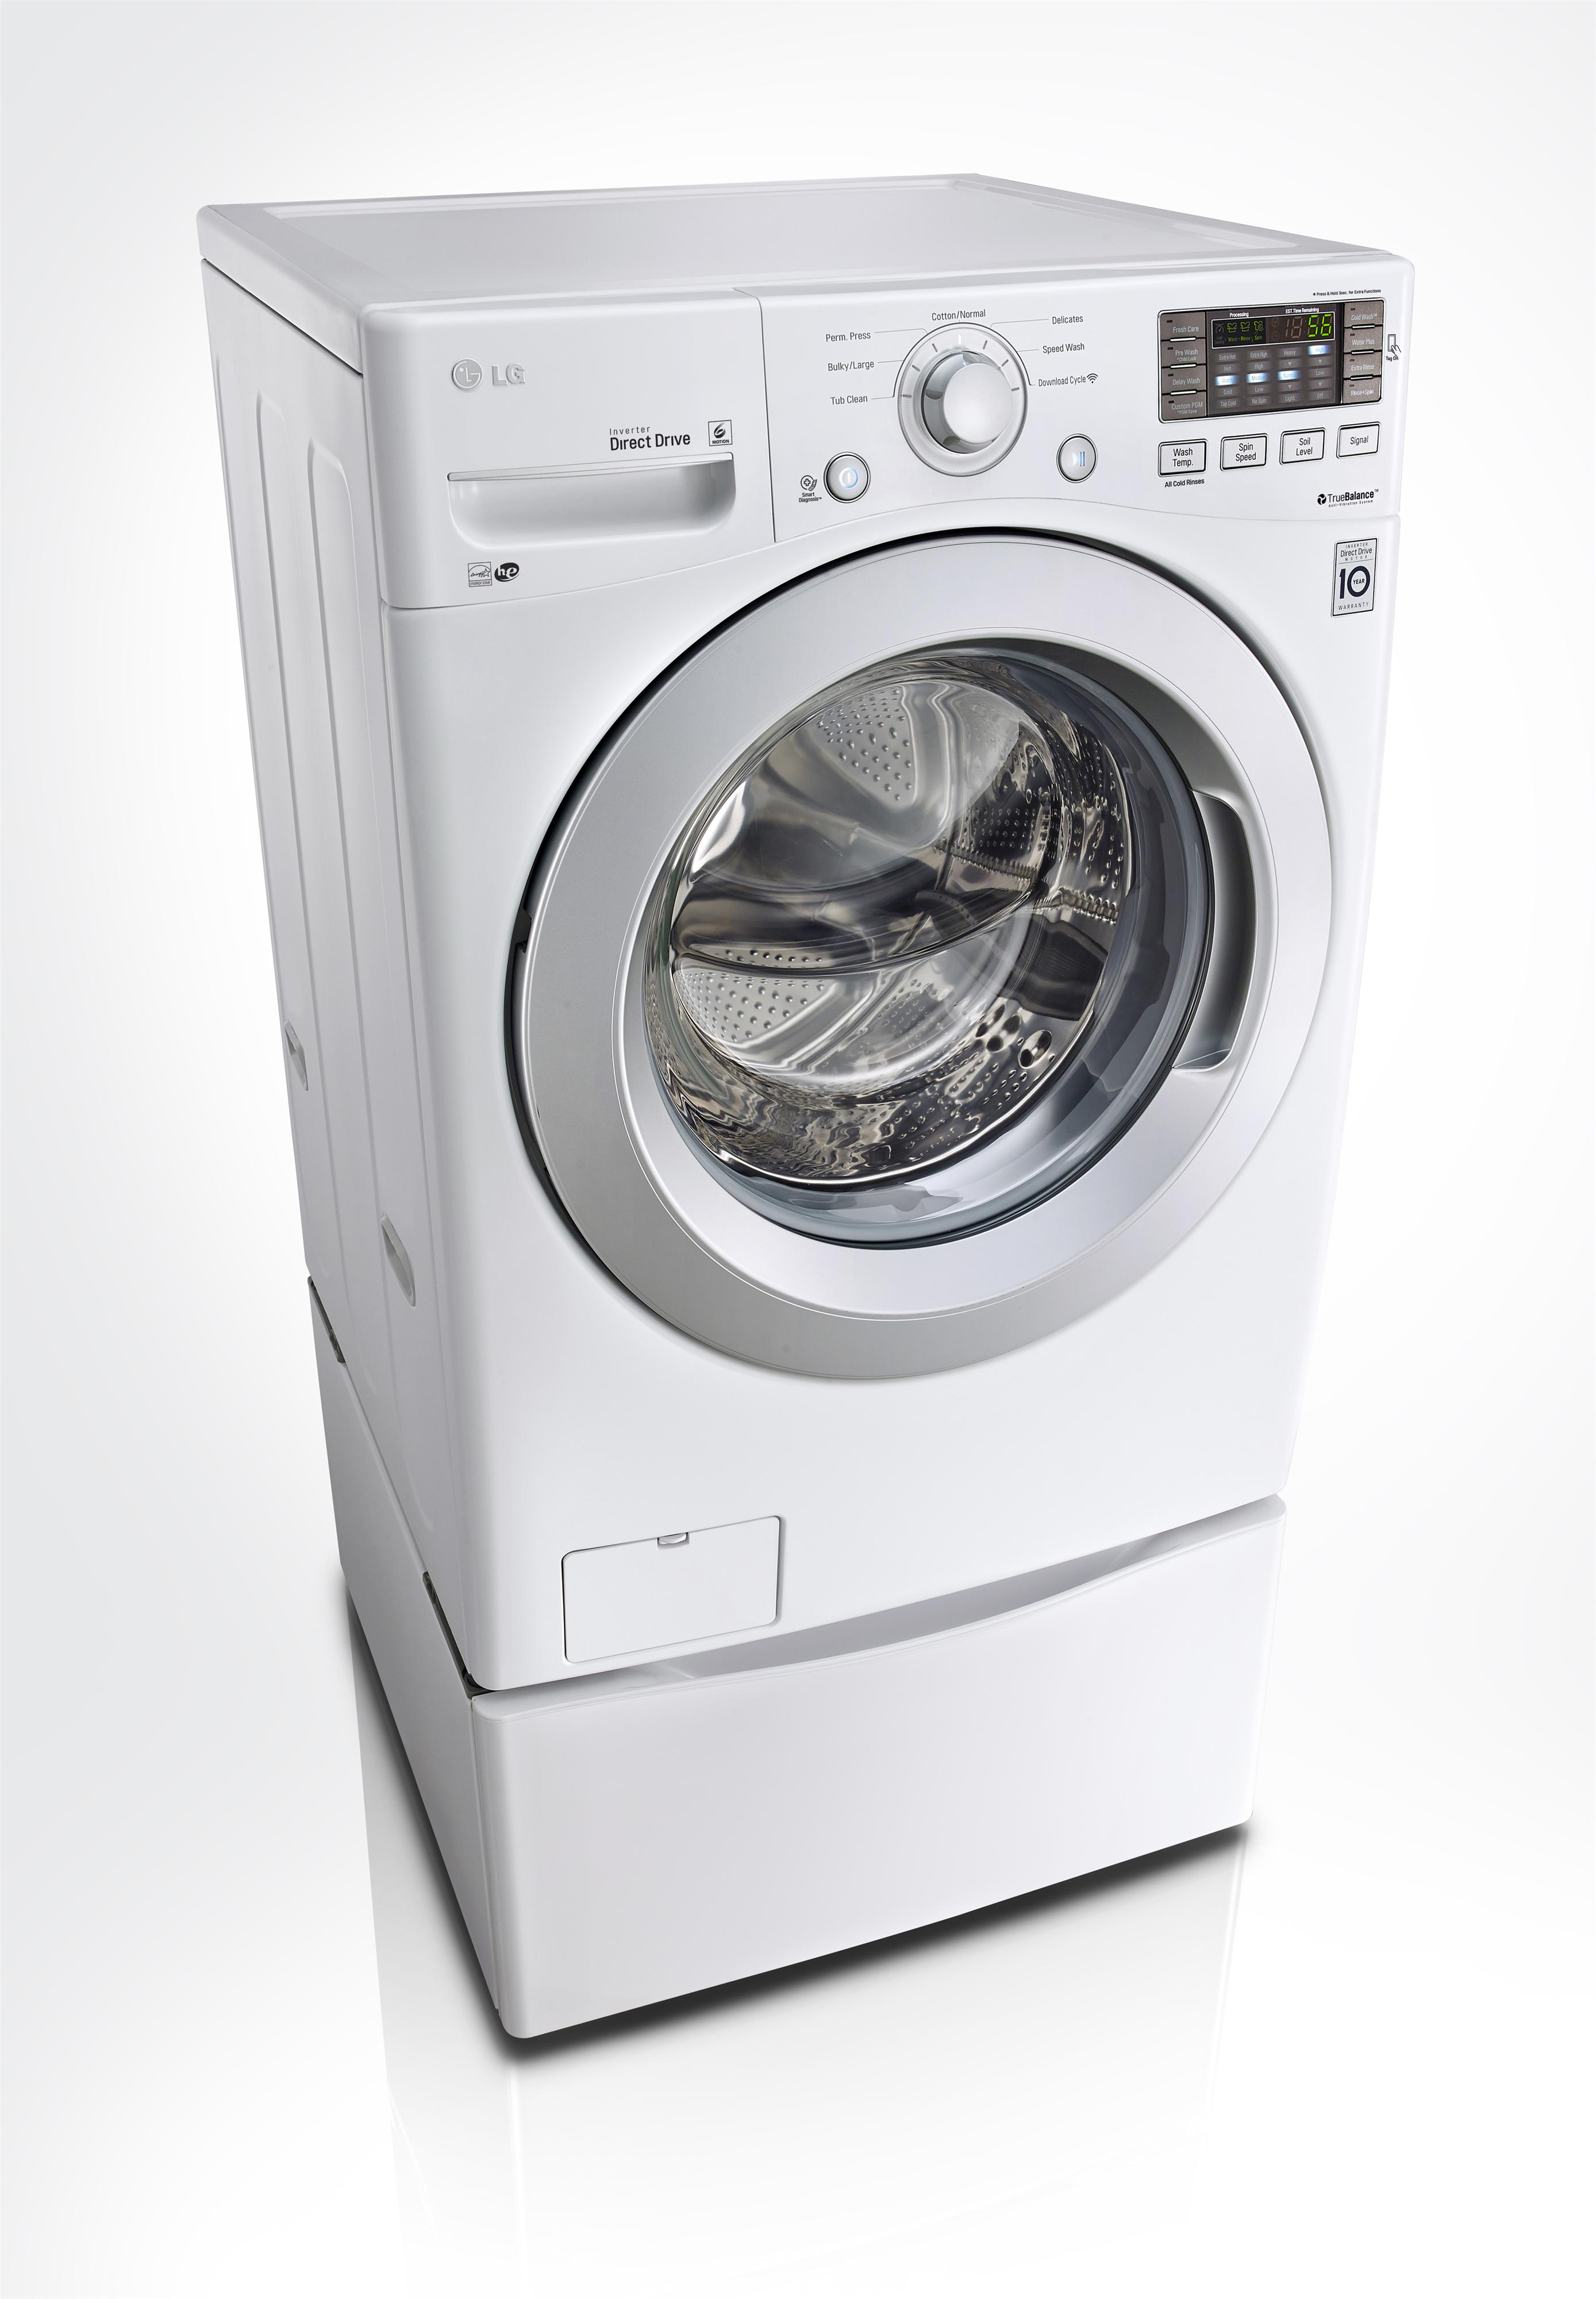 LG Appliances Washers 4.3 Cu. Ft. Front Load Washer - Item Number: WM3170CW